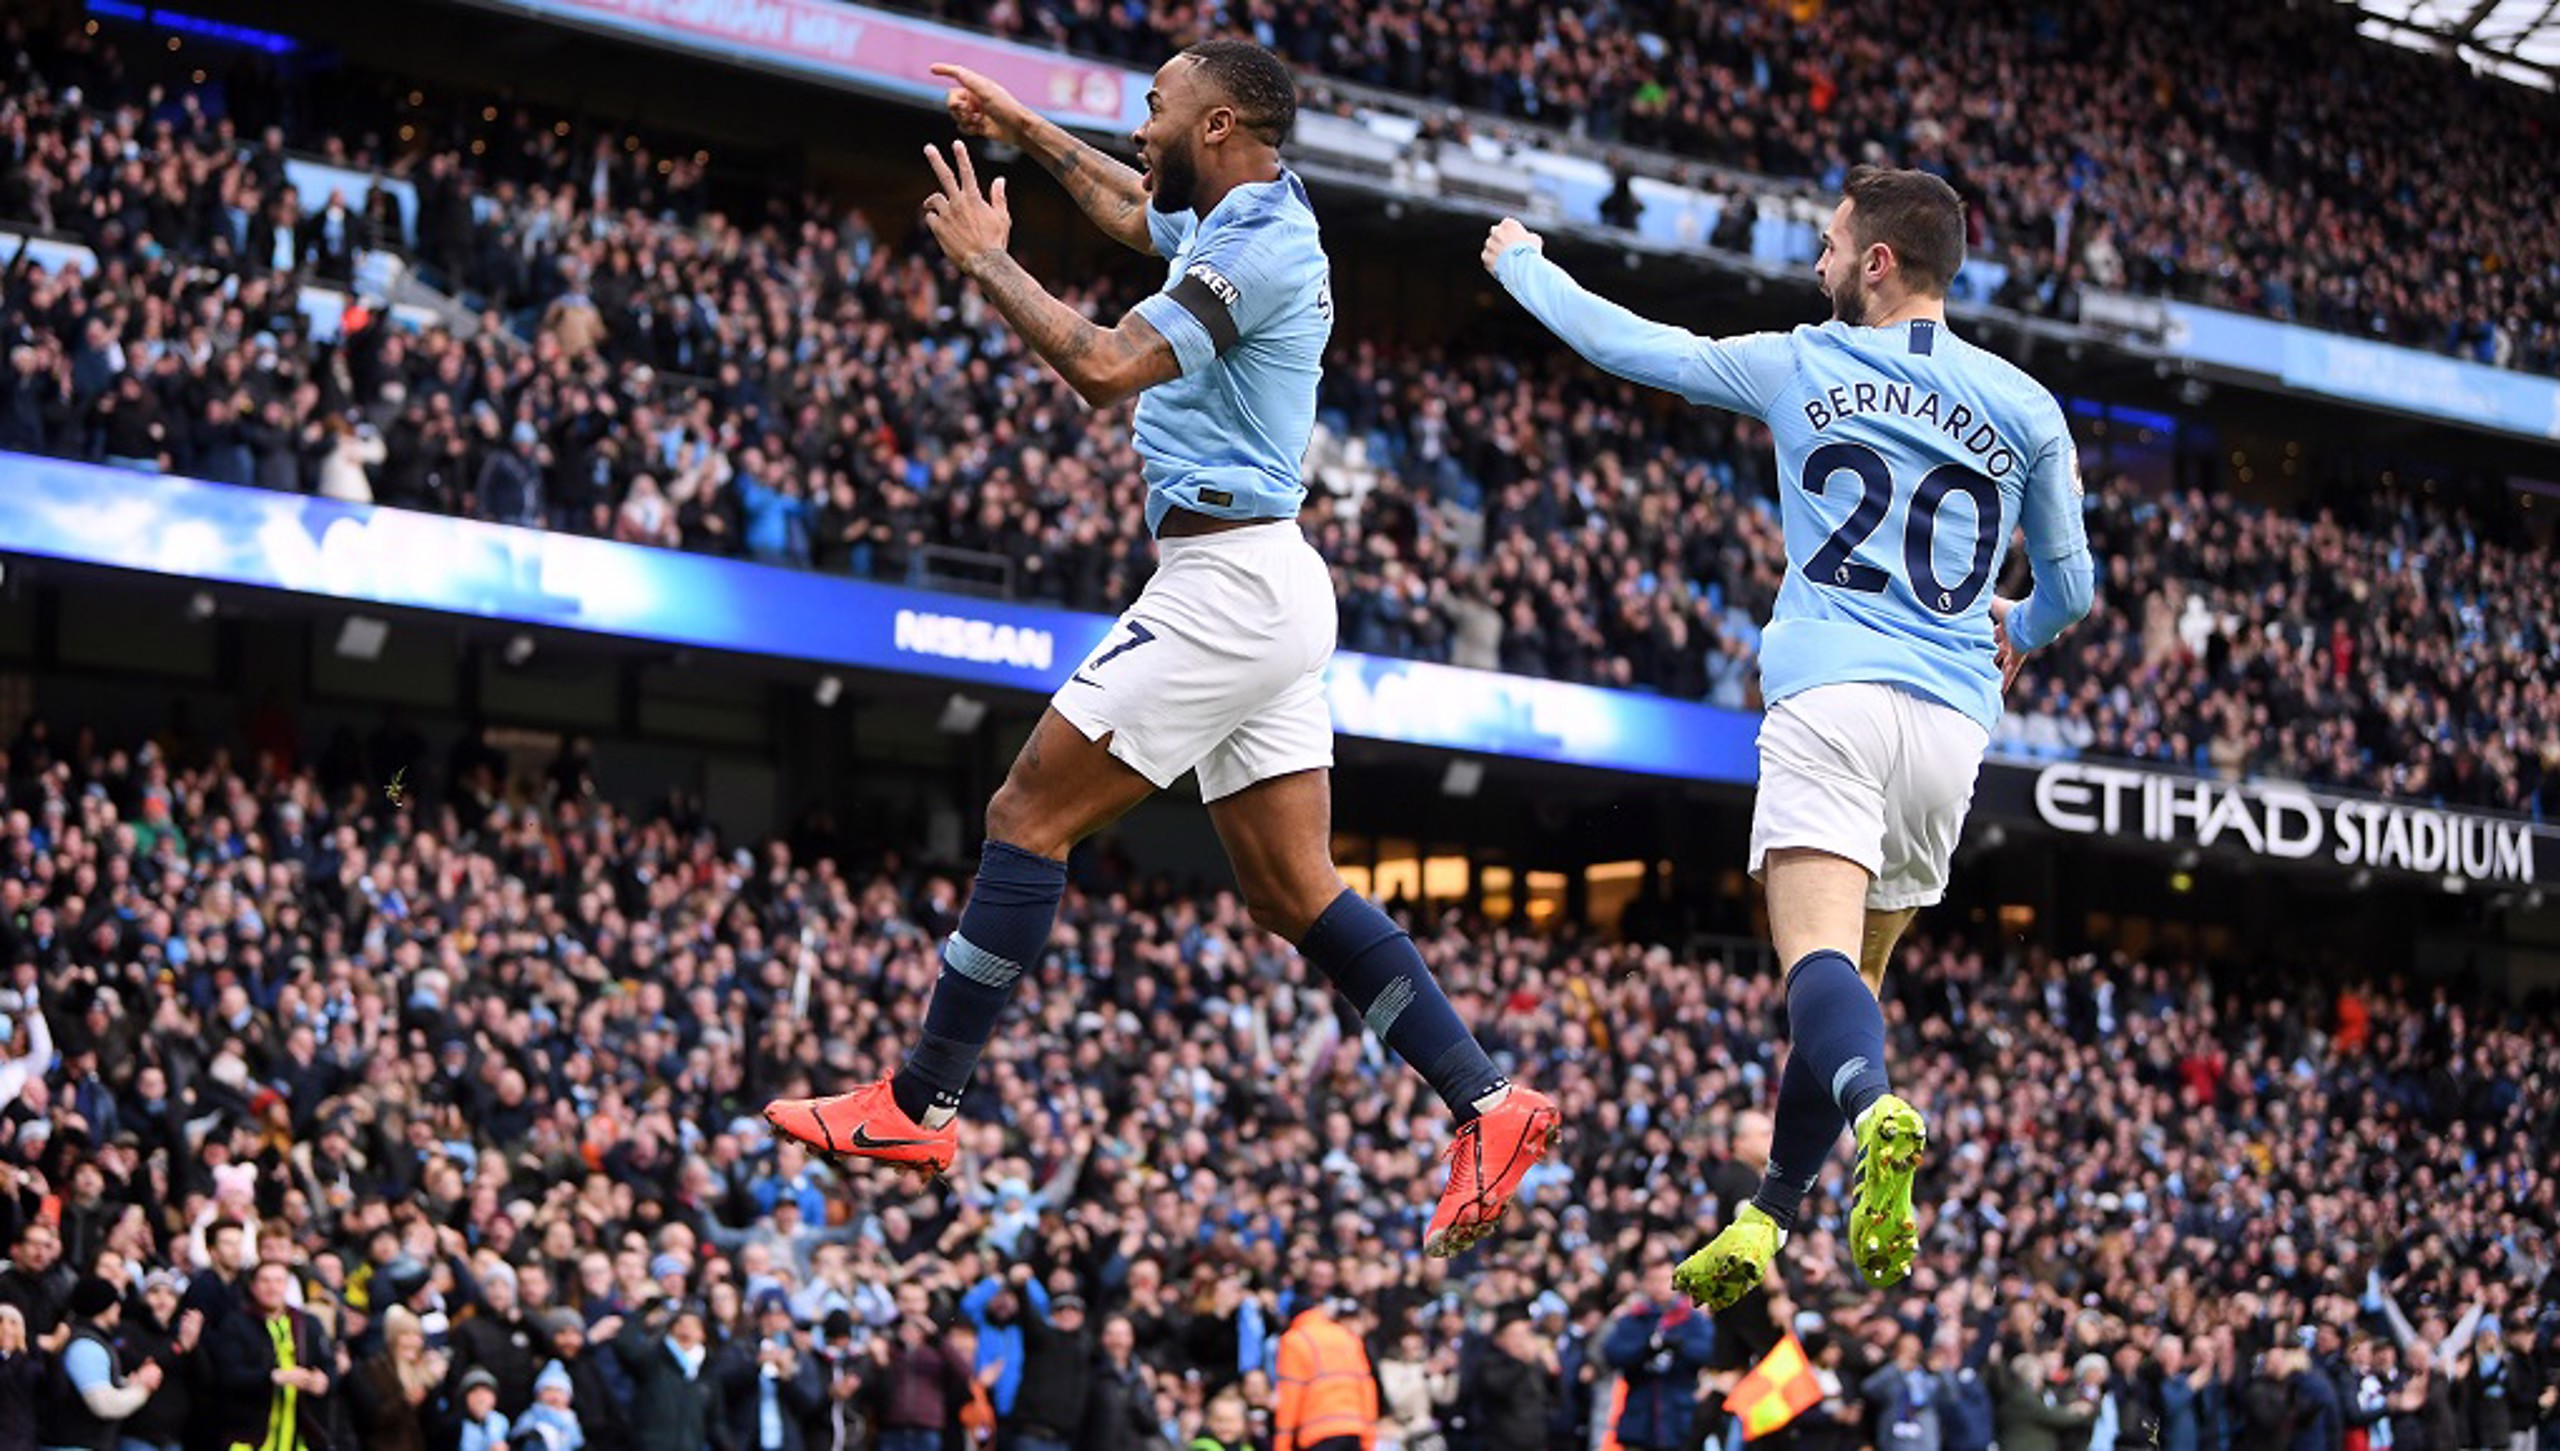 10-man City snatch victory with stunning late show